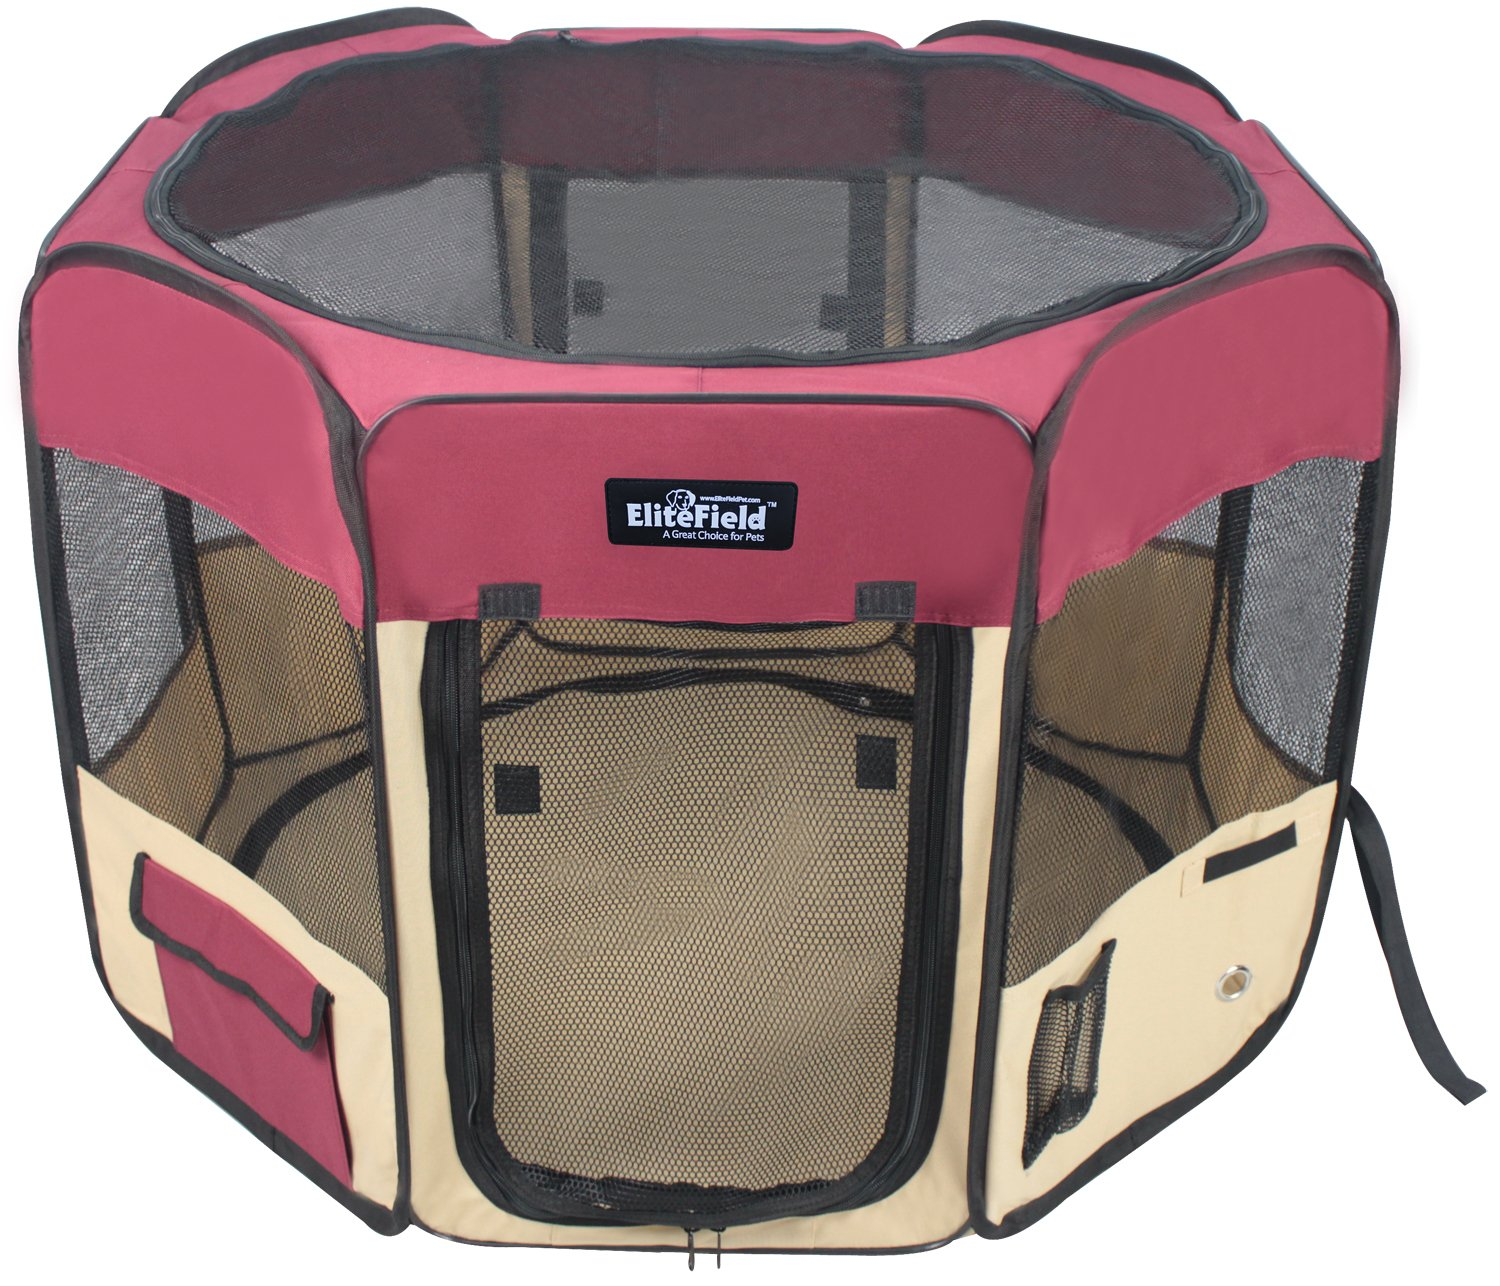 Maroon+Beige 48\ Maroon+Beige 48\ EliteField 2-Door Soft Pet Playpen, Exercise Pen, Multiple Sizes and colors Available for Dogs, Cats and Other Pets (48  x 48  x 32 H, Maroon+Beige)